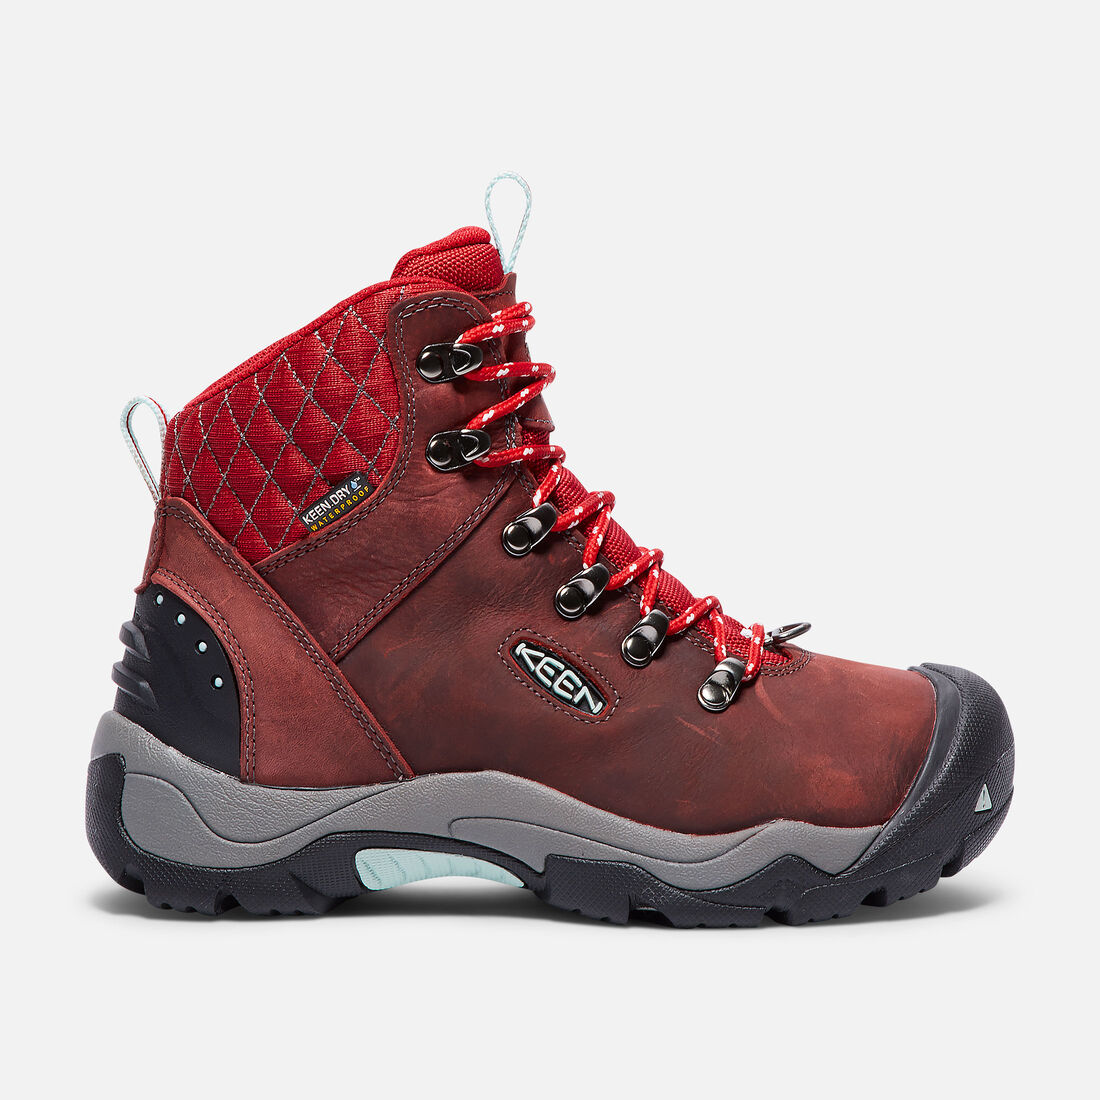 01ec9a4445 Women's Revel III - Insulated Hiking Boots | KEEN Footwear